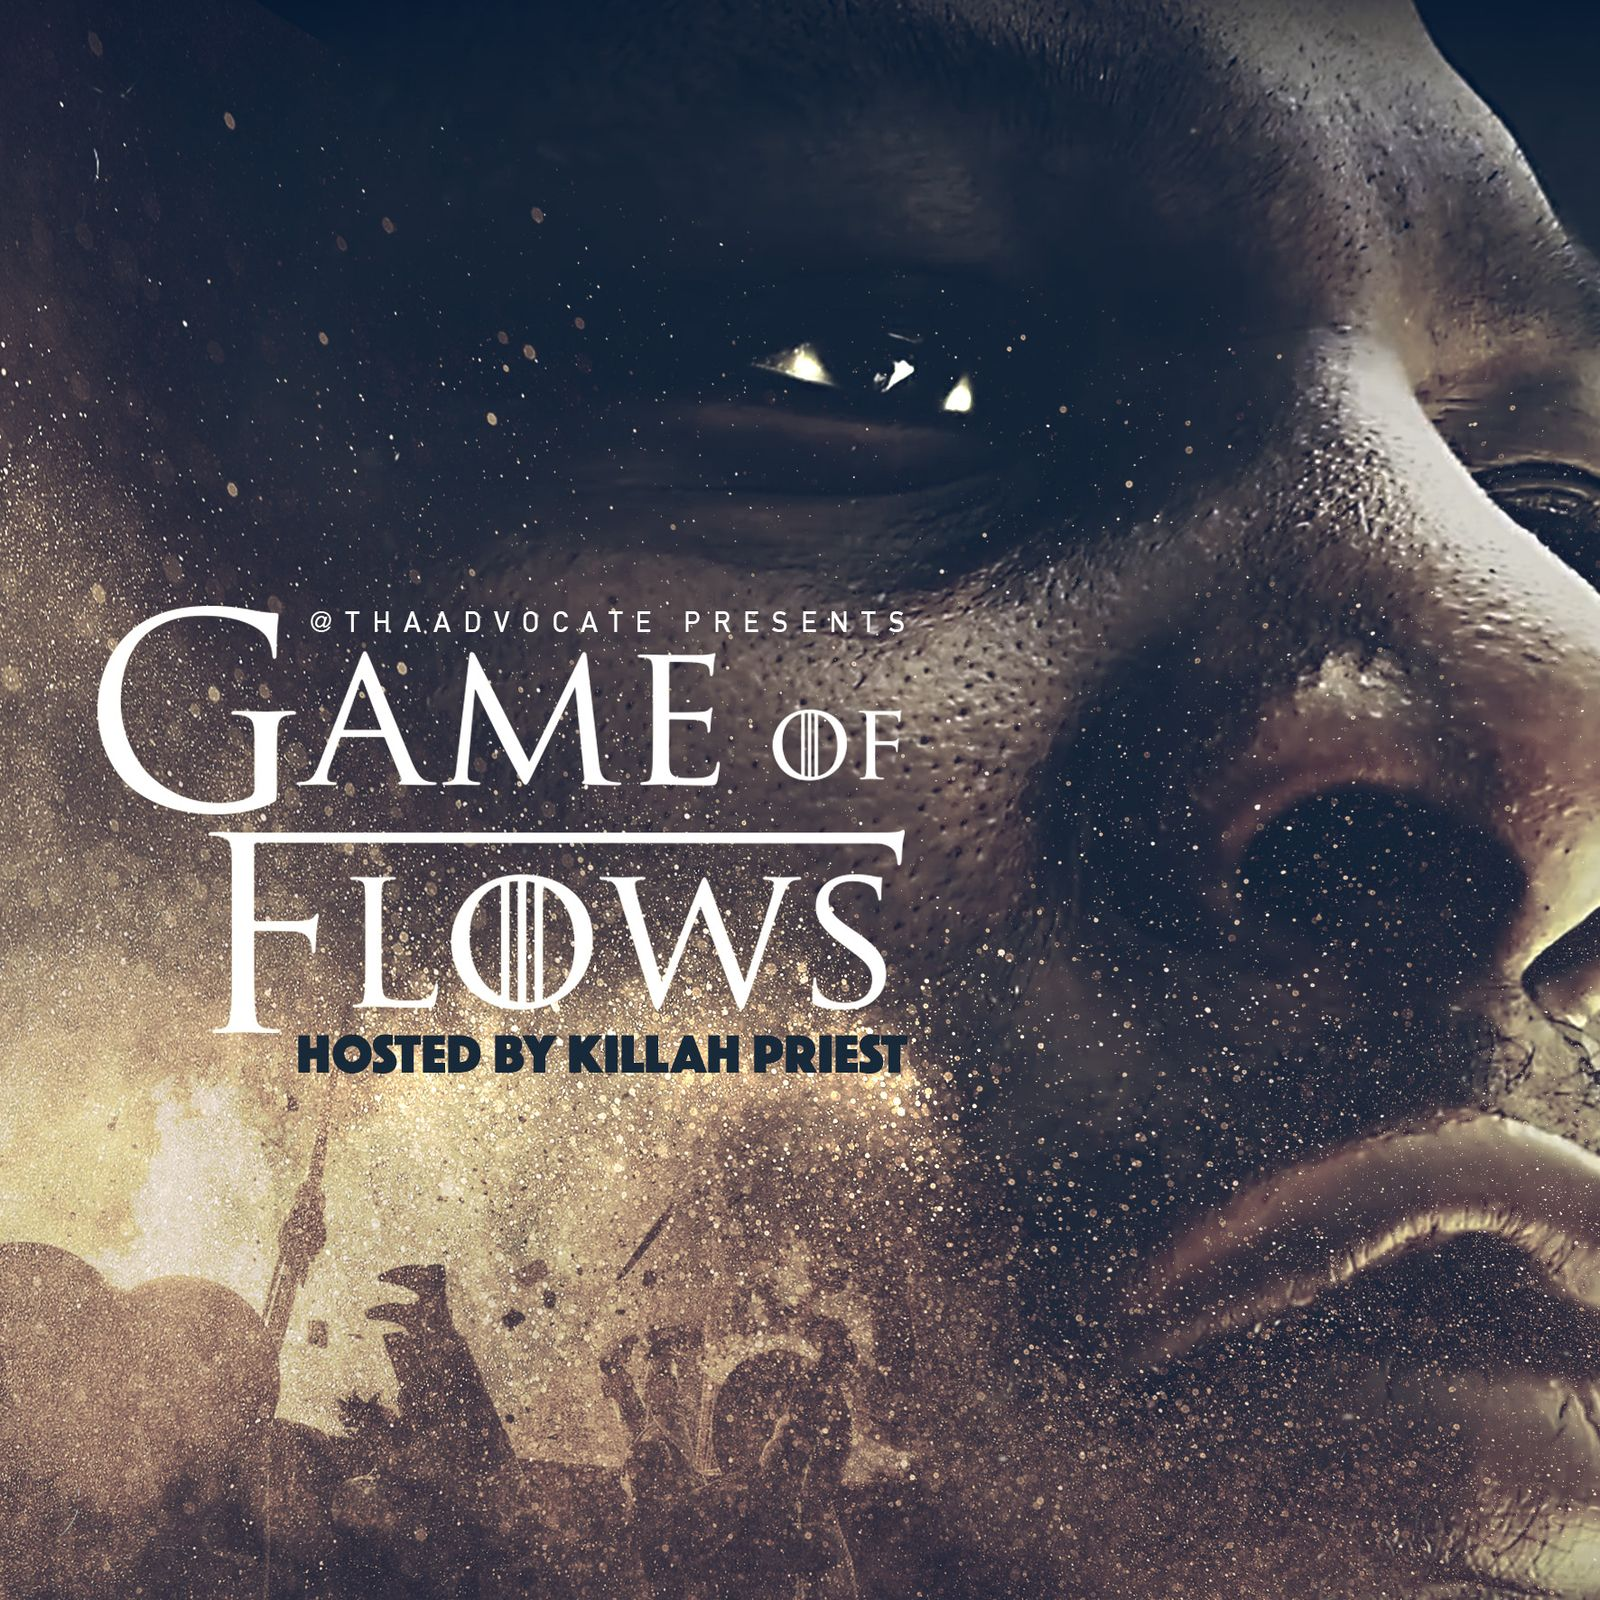 New Tha Advocate Presents Game Of Flows Mixtape Hosted By Killah